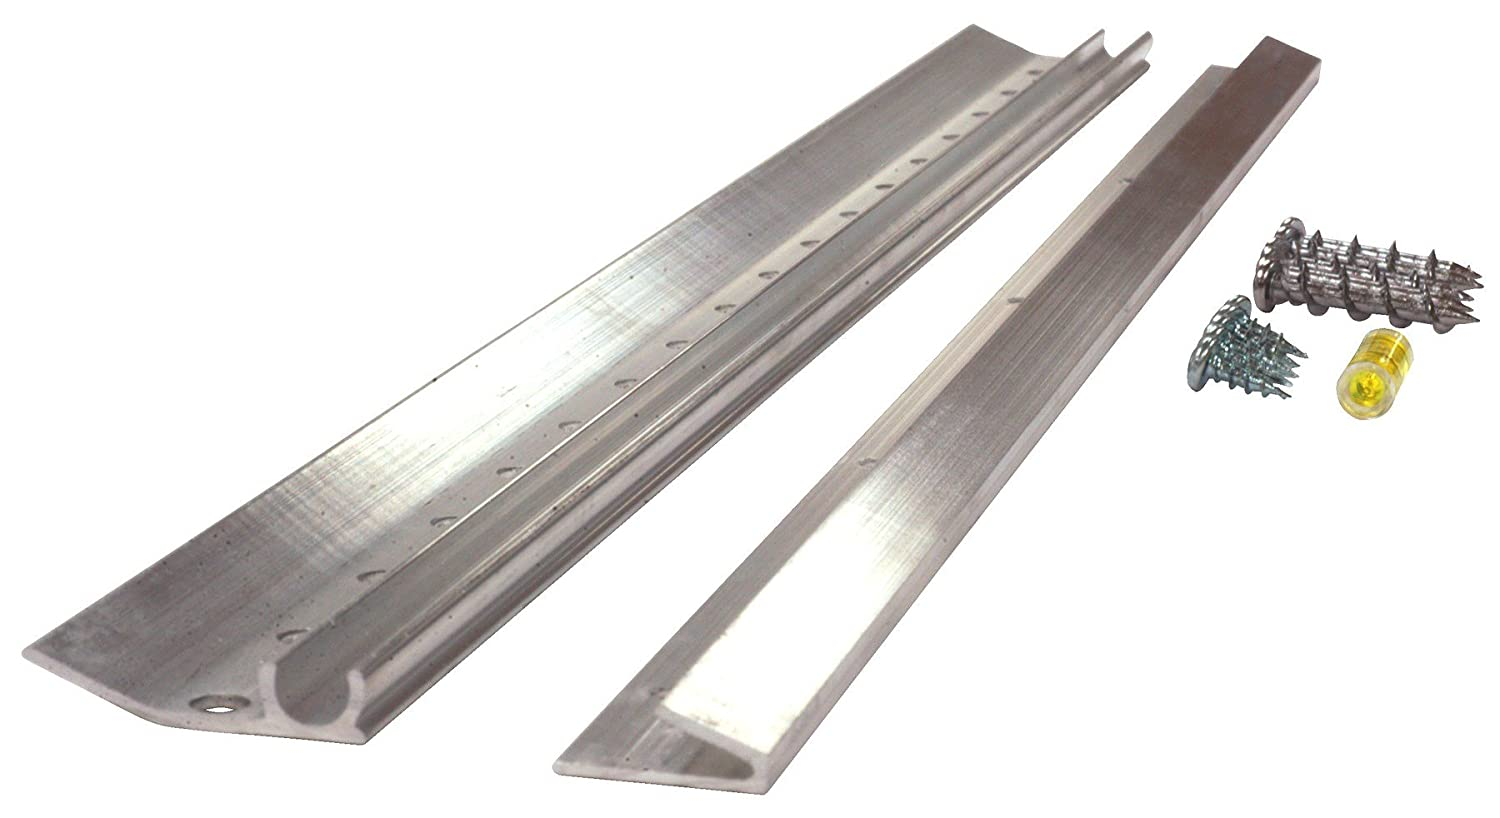 OOK 55316 13-Piece Up to 200 Pound Hangman French Cleat with Hardware 533212